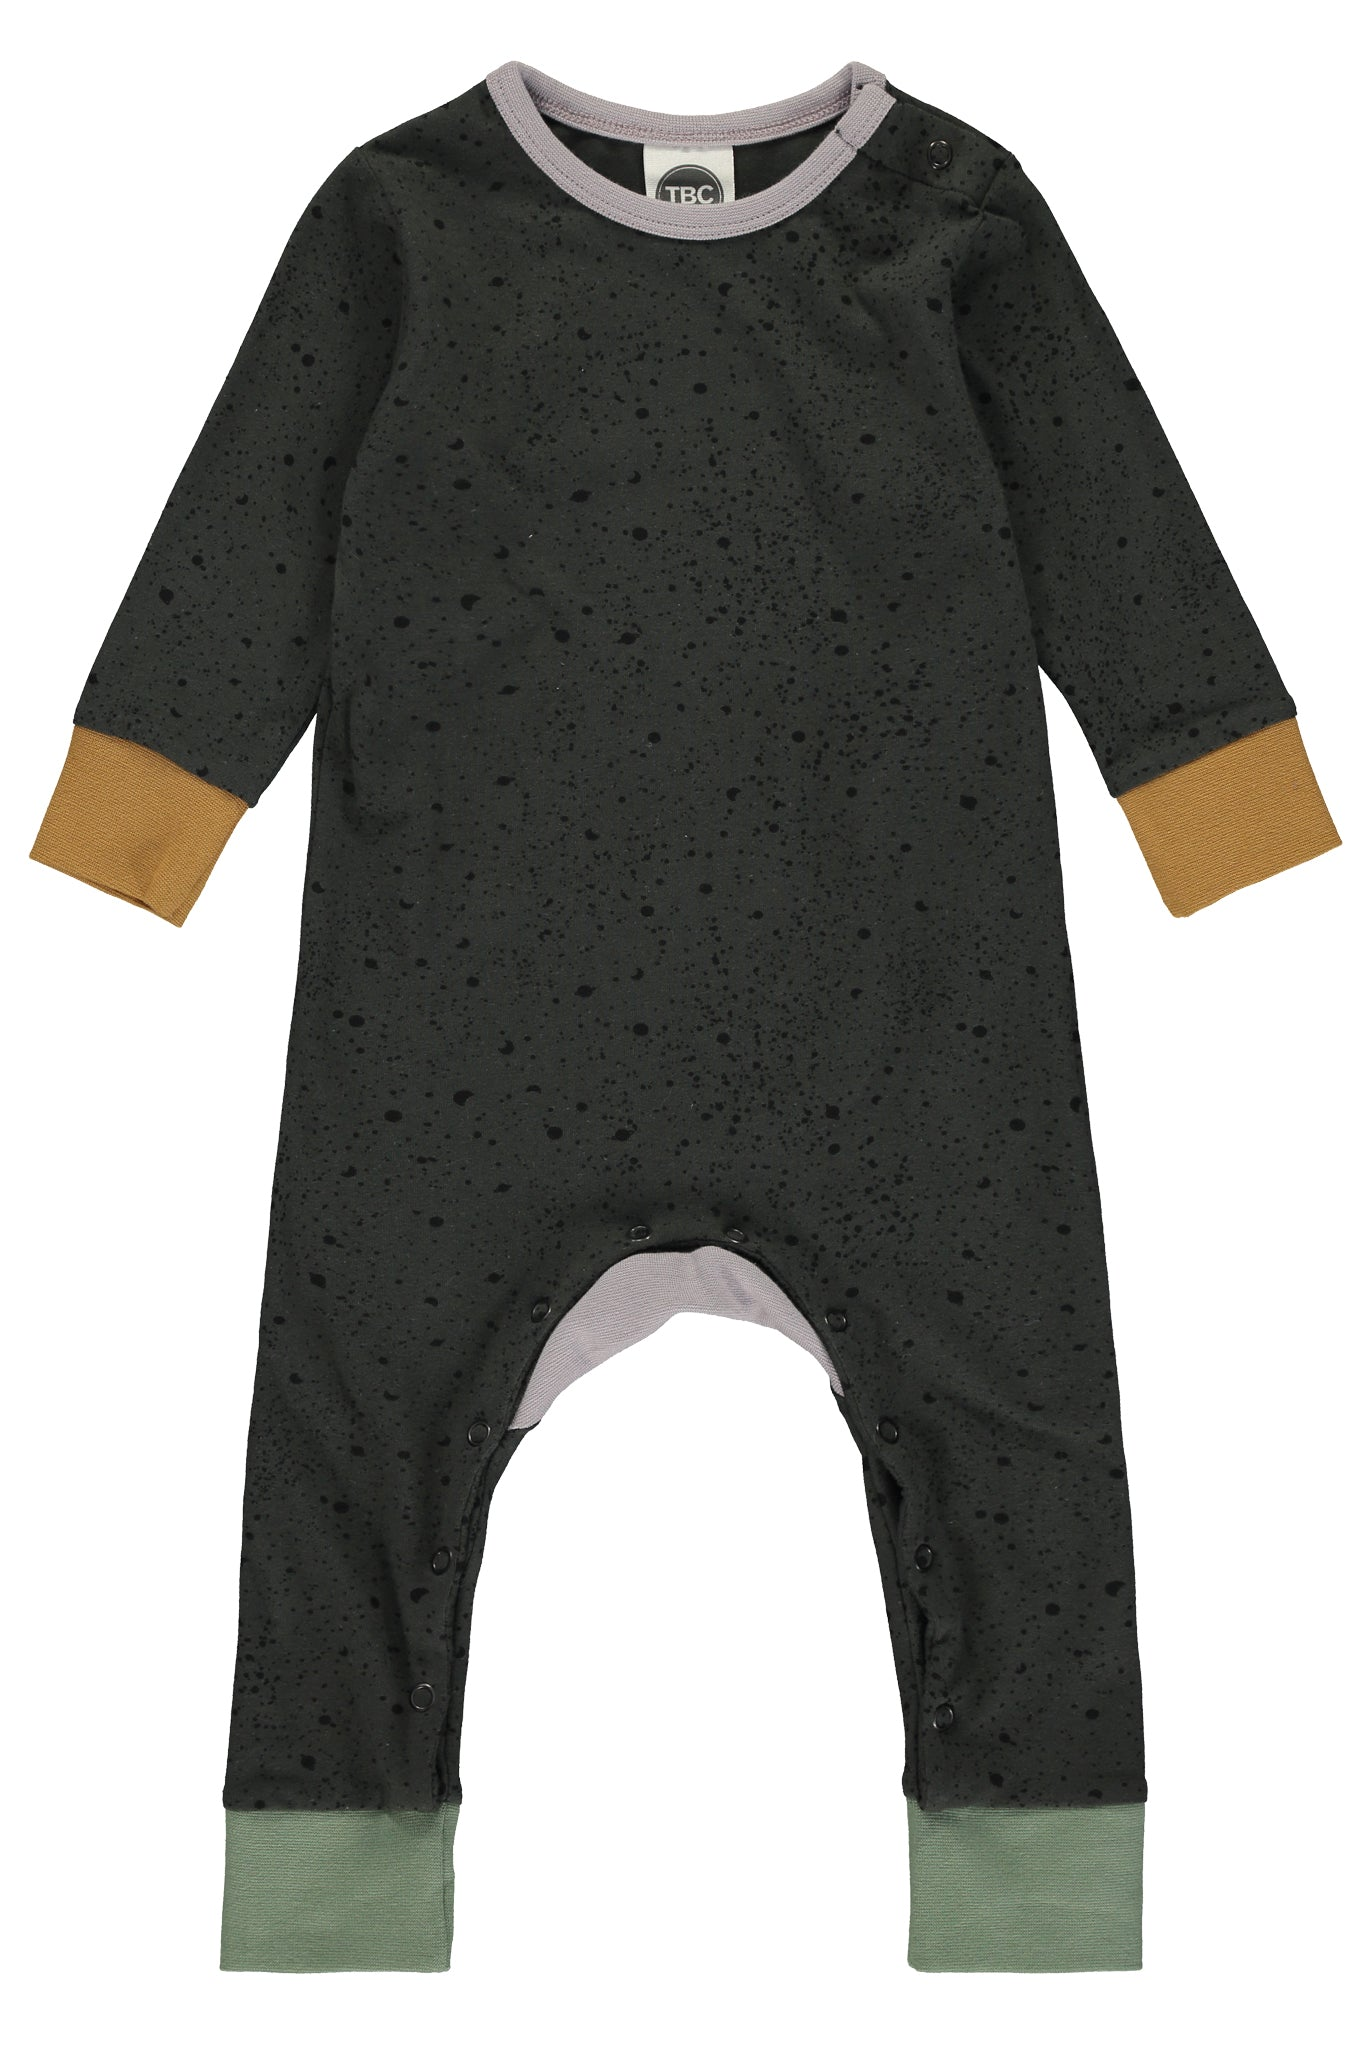 MONTY SLEEPSUIT - PAINT SPLAT PEAT - The Bright Company